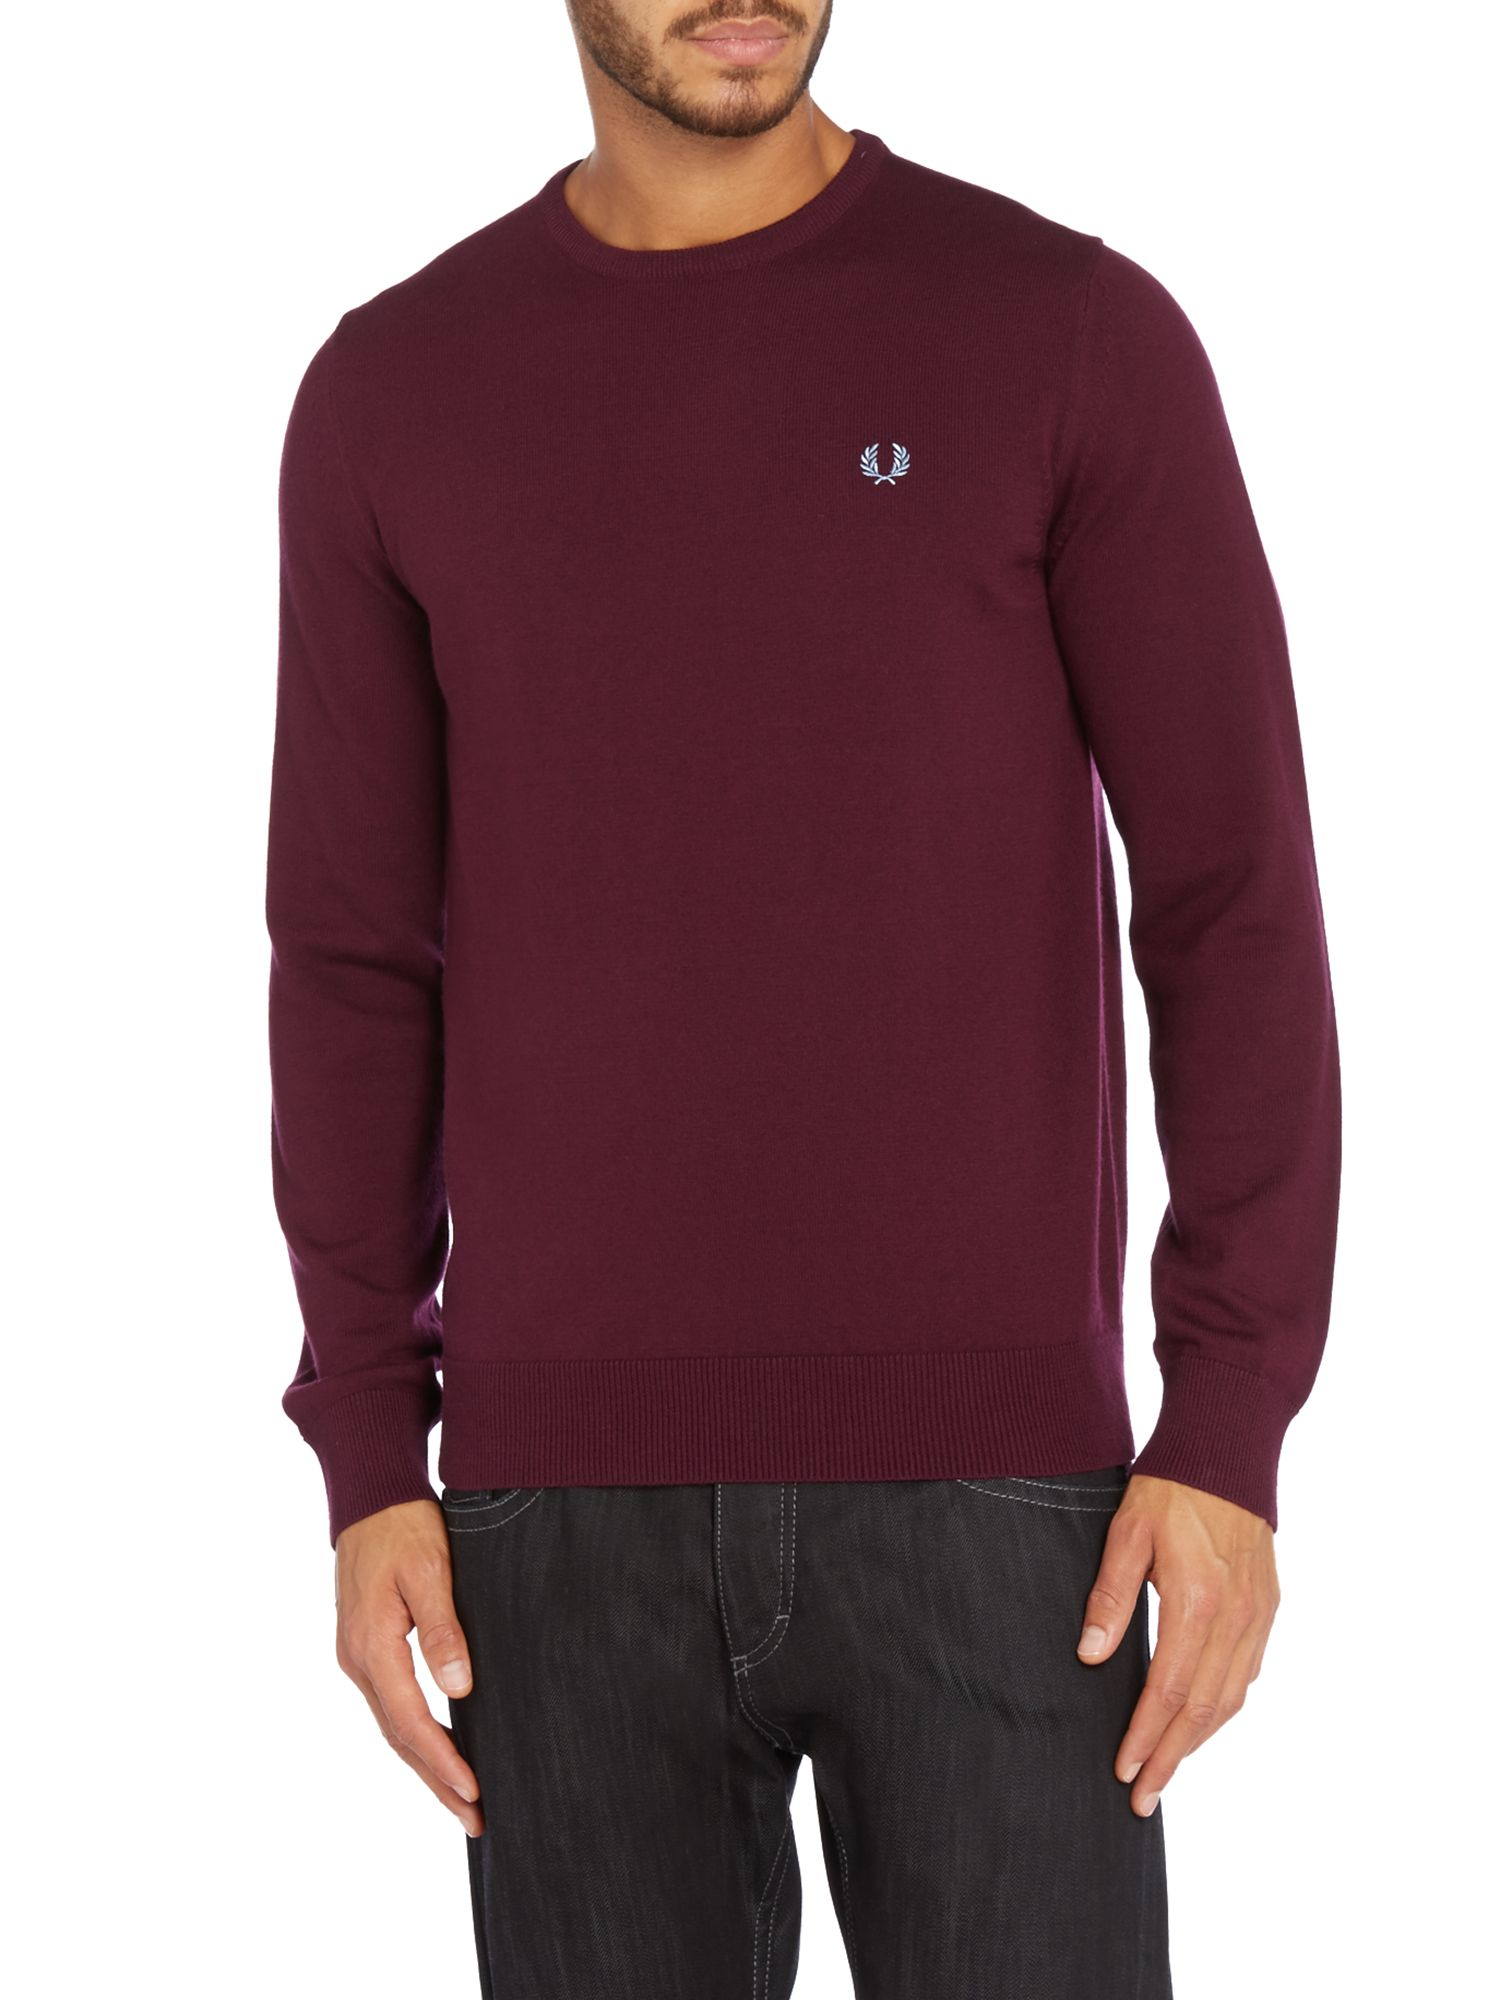 Fred Perry Merino Crew Neck Knit - Navy